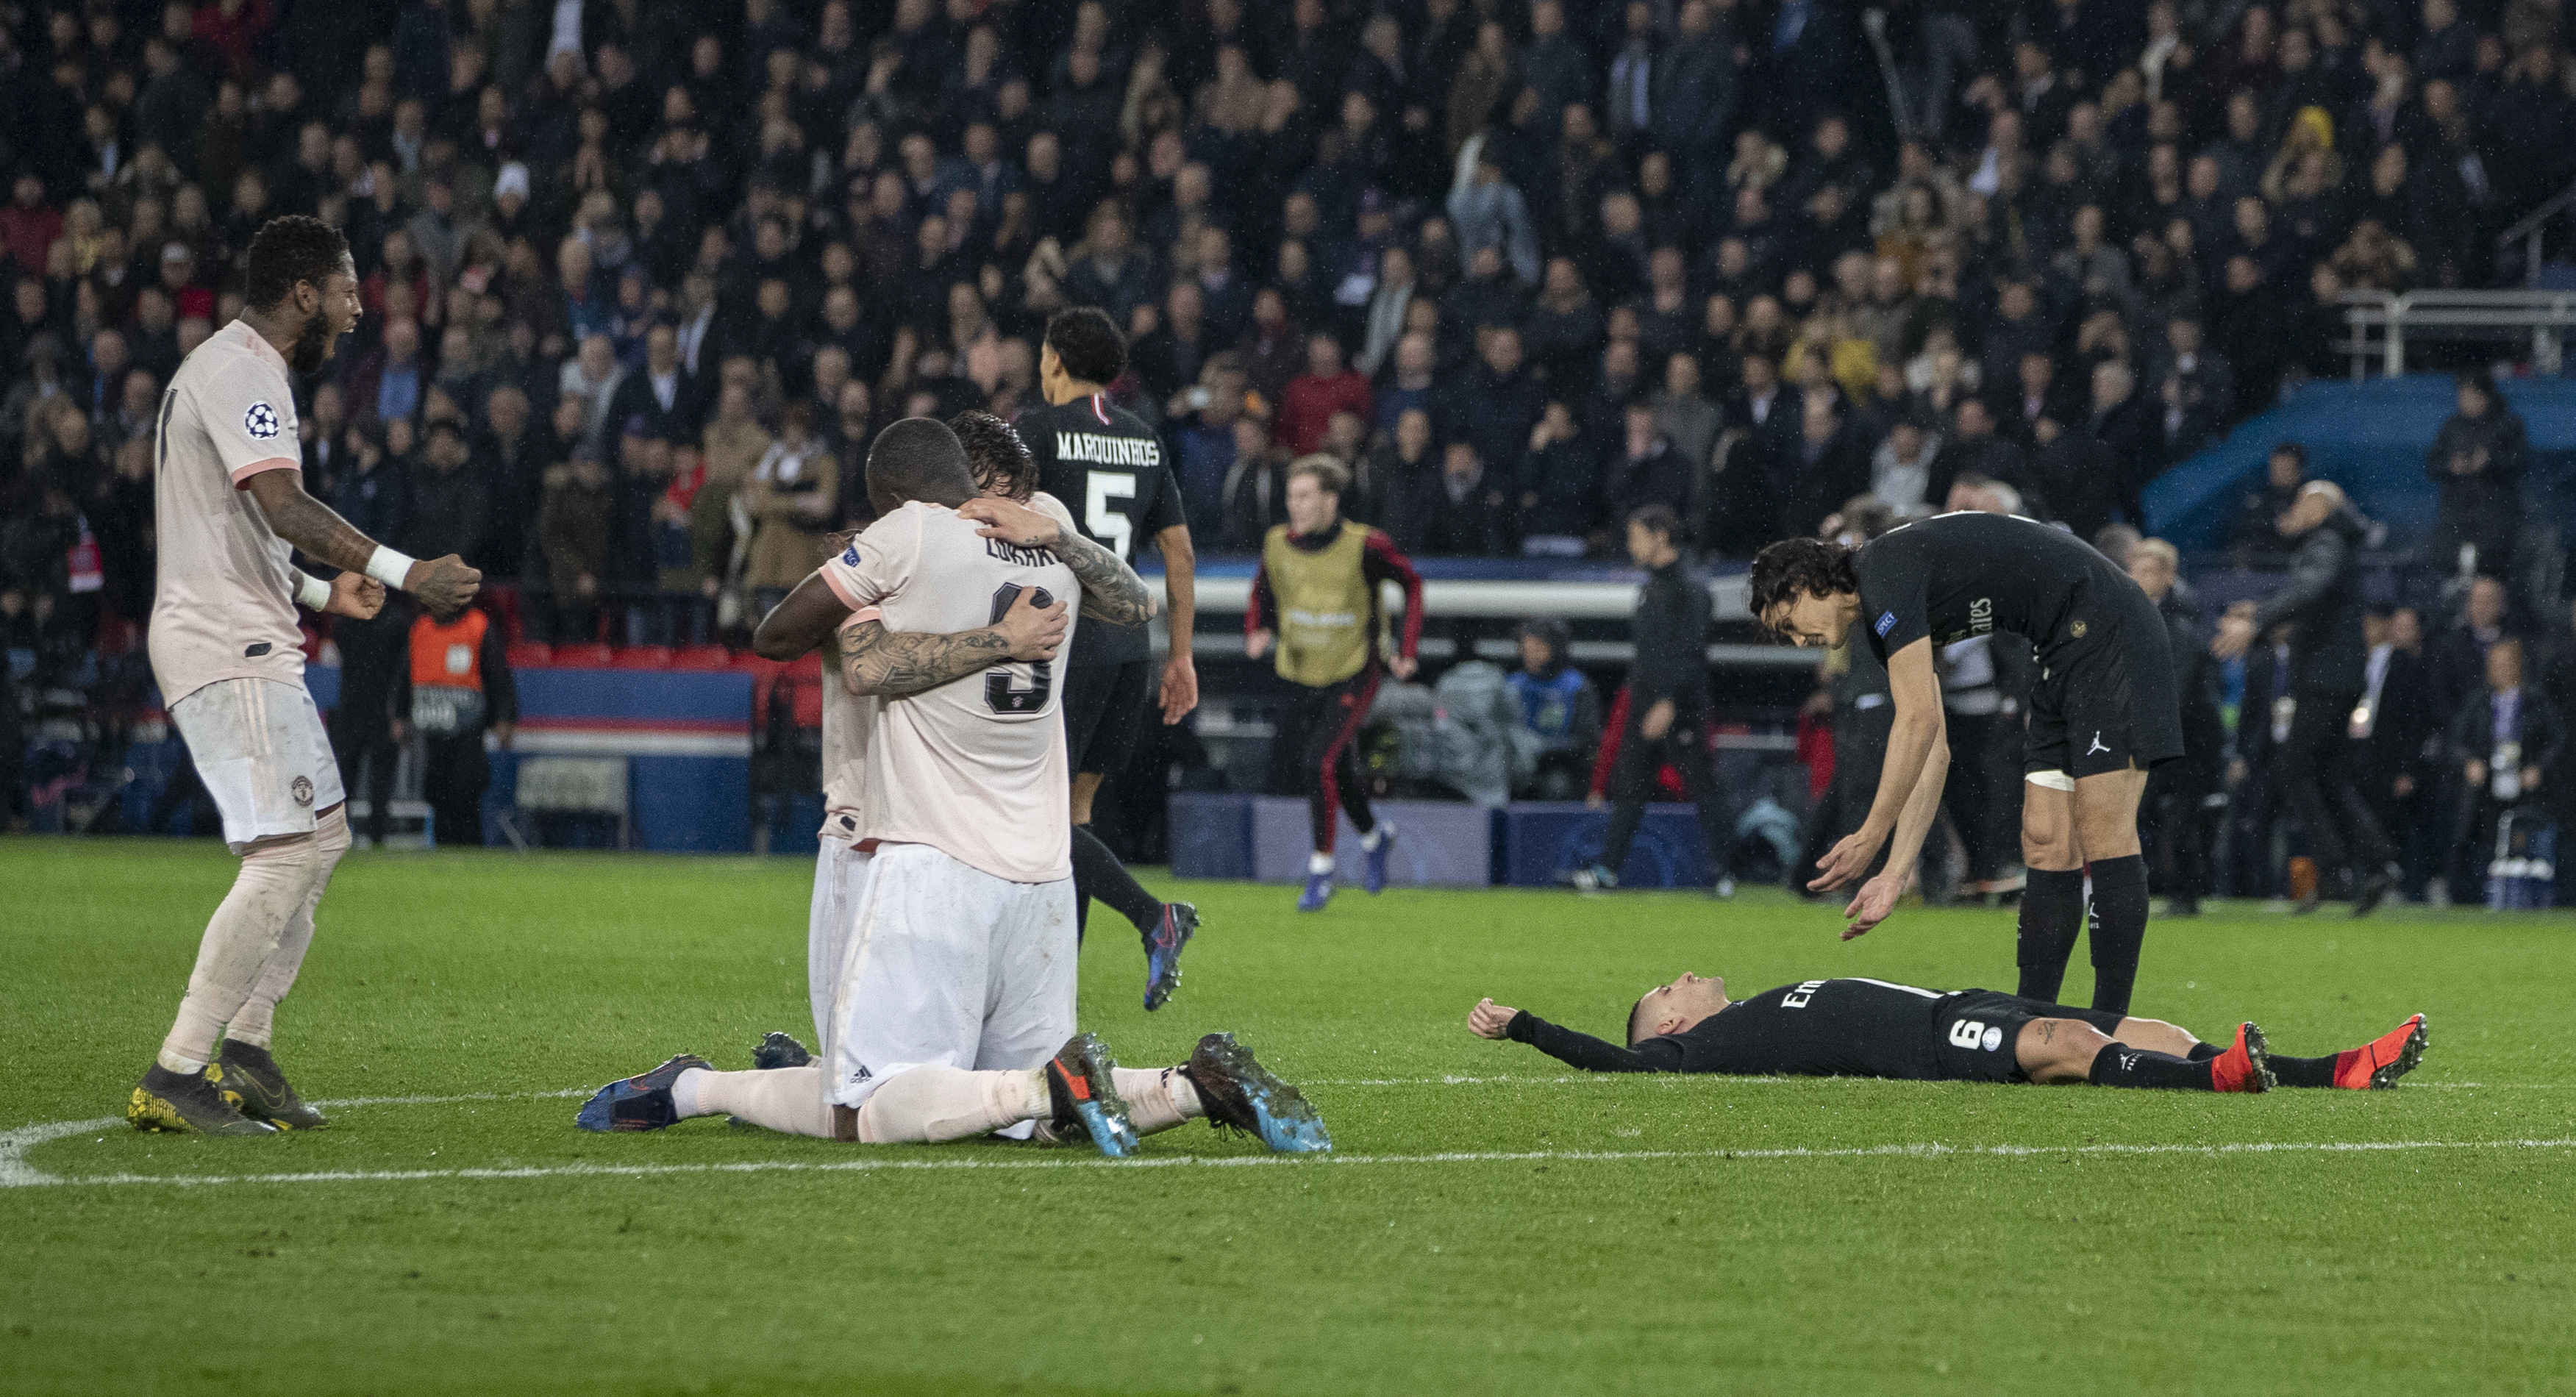 PSG 1 – 3 United: Five things we learned